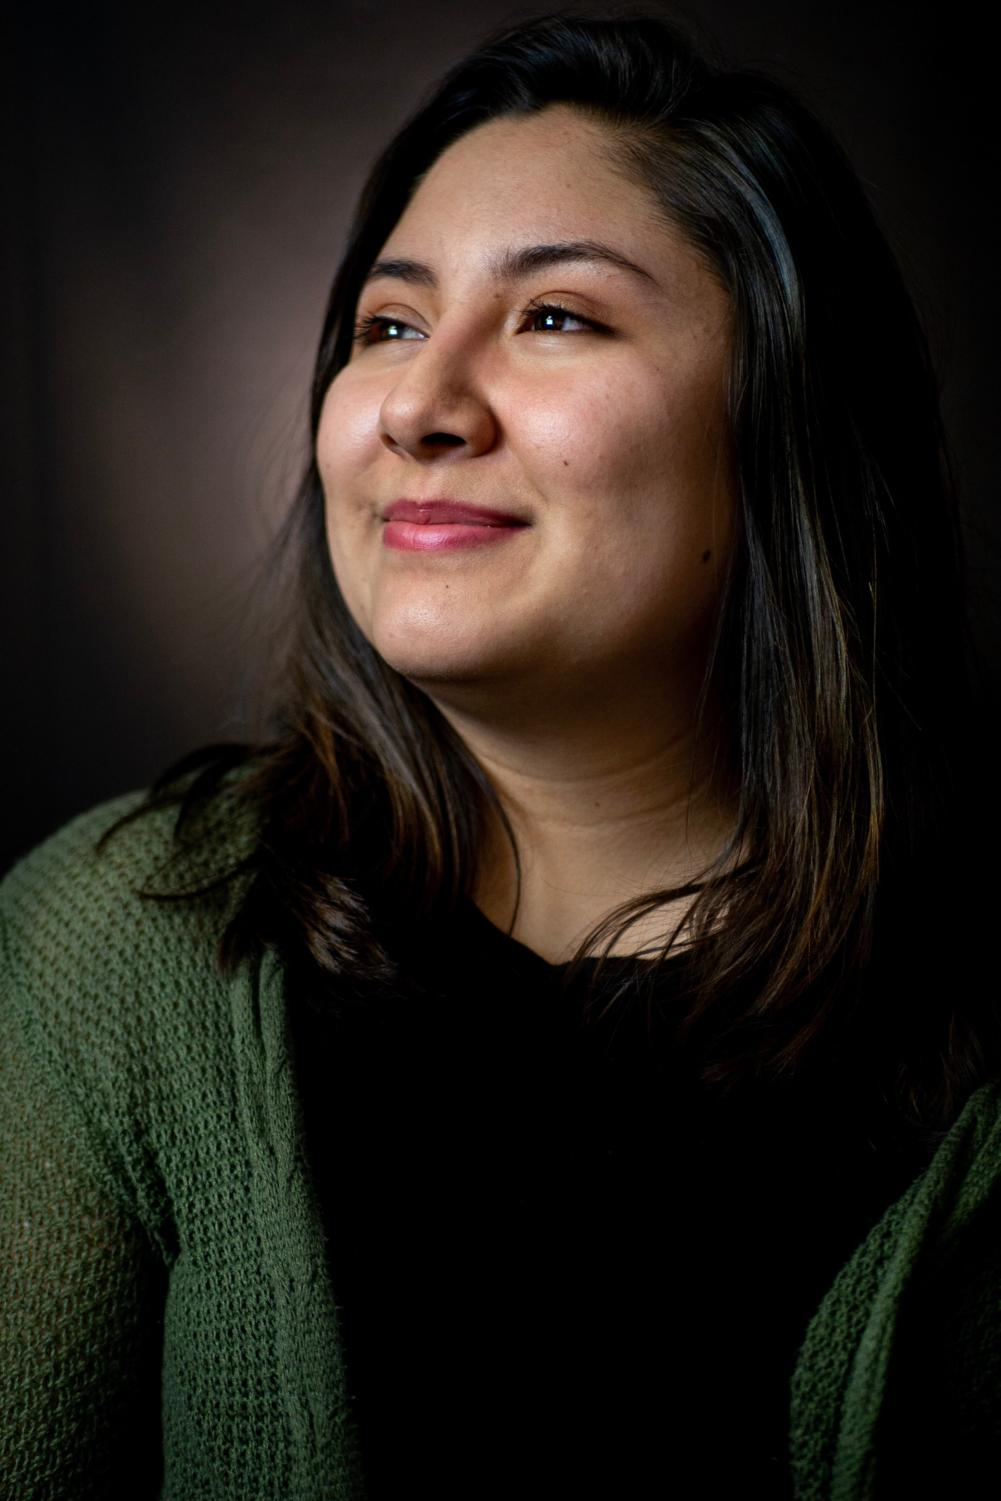 SRJC nursing student Jocelyn Zhaori Contreras-Toscano is vice chair of Student Life and co-chair of Movimiento Estudiantil Chicanista de Aztlán (MEChA). She flew into the U.S. at age 2 on the lap of a stranger and talked with the Oak Leaf about the difficulties of being undocumented.